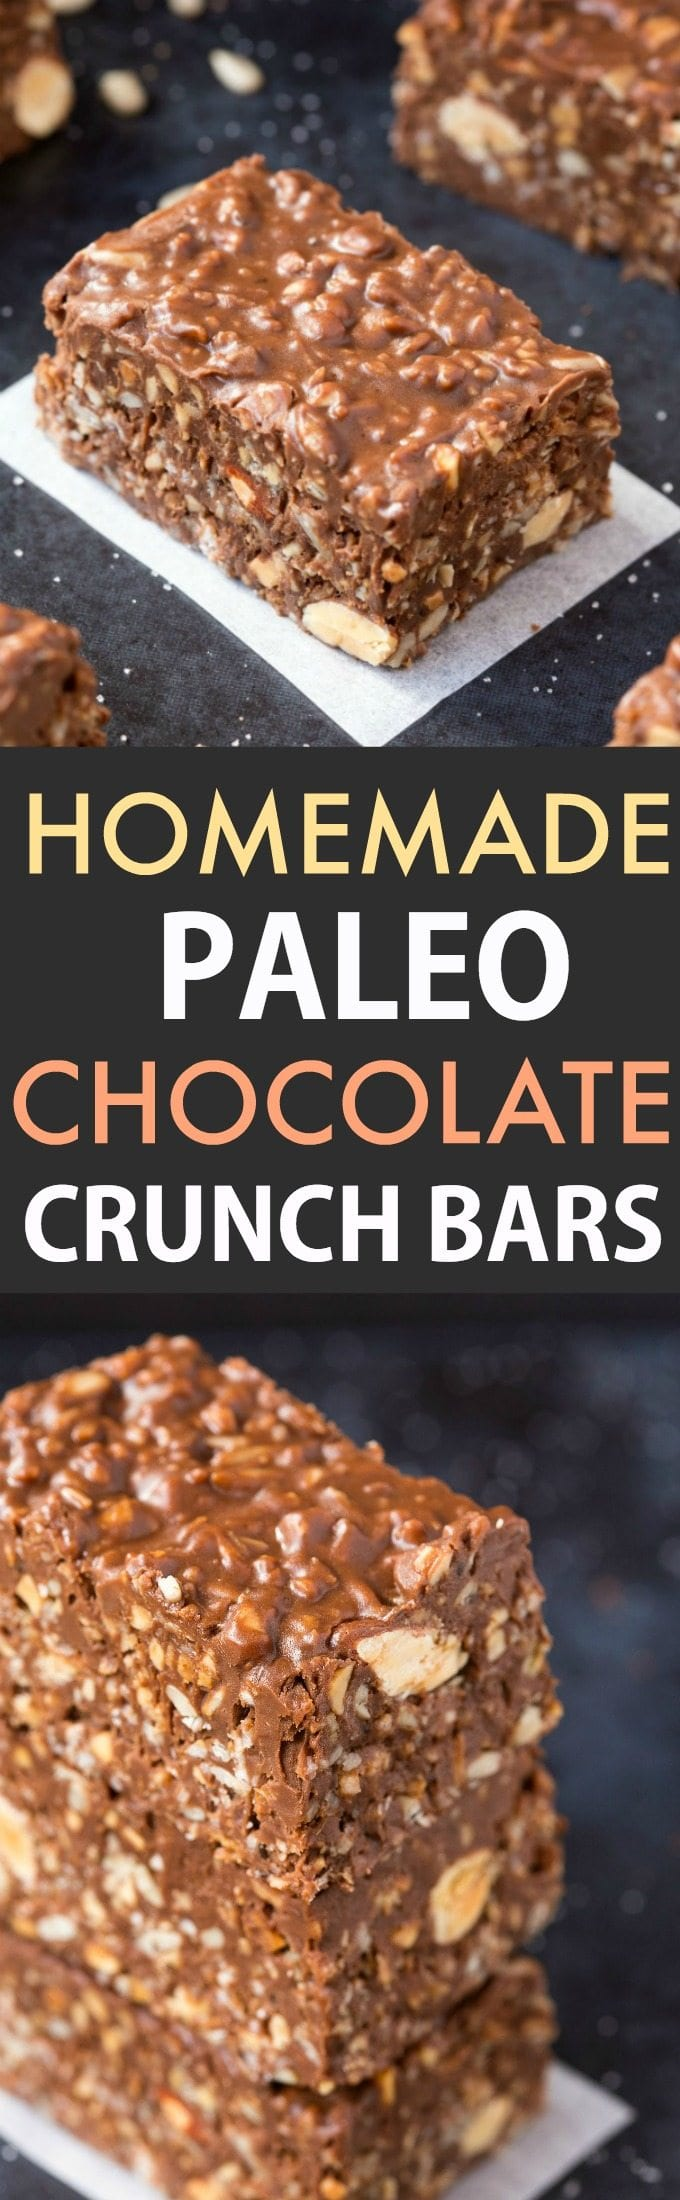 No Bake Homemade Paleo Chocolate Crunch Bars- Easy, fuss-free and delicious, this healthy candy bar copycat combines crispy seeds, chocolate and almond butter in one